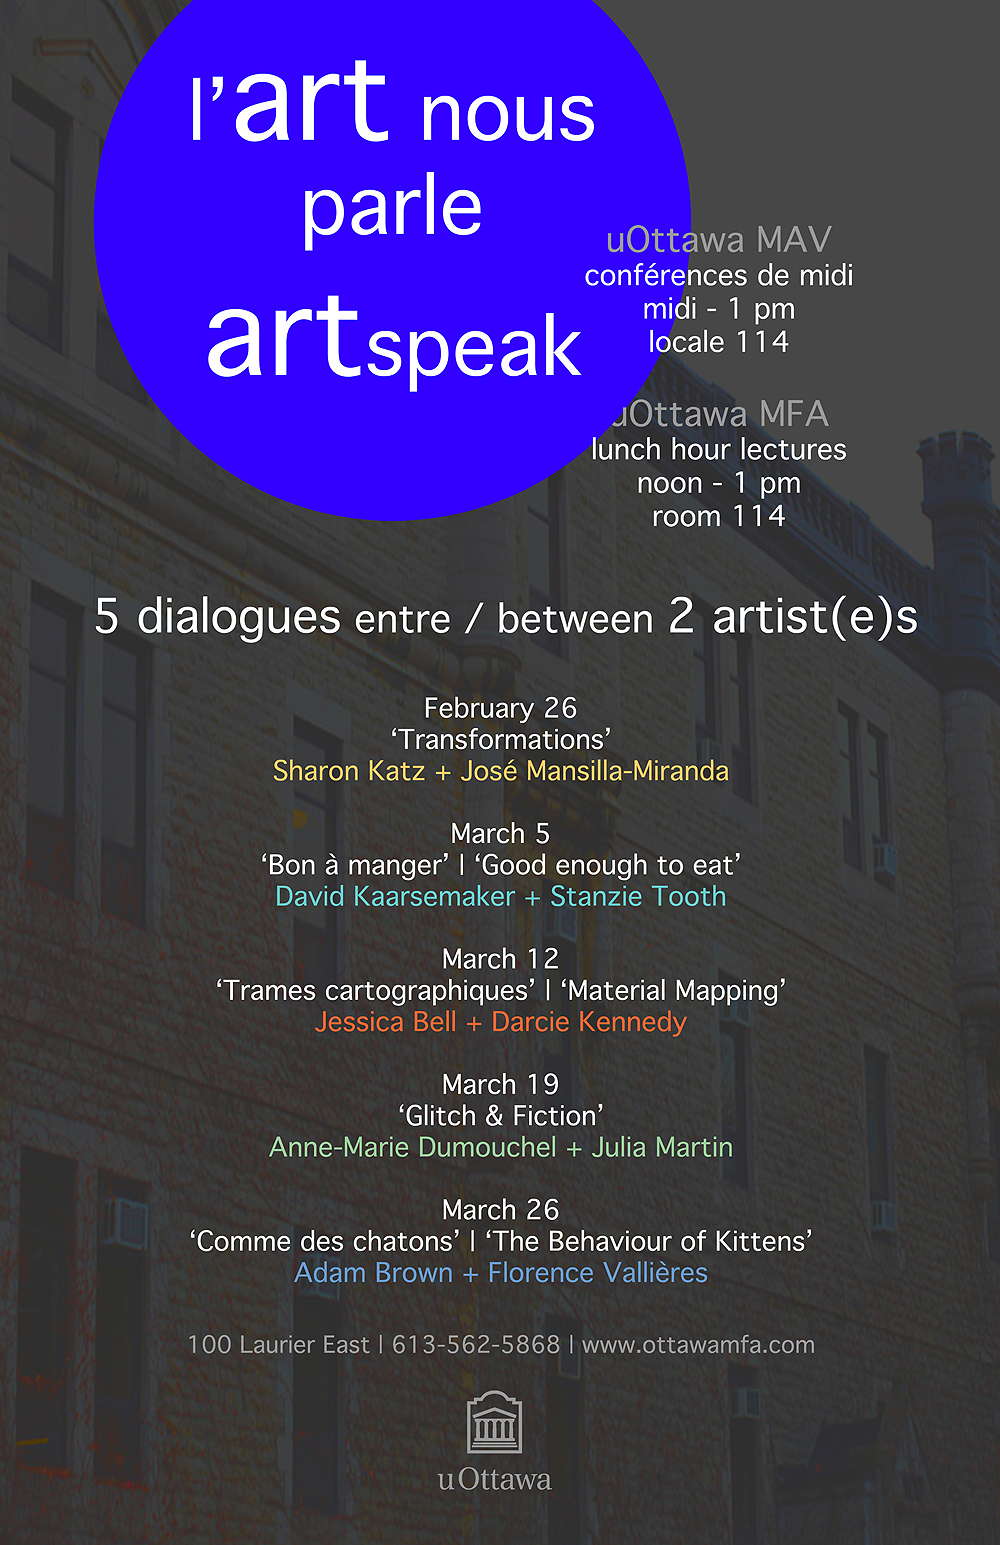 ArtSpeakPoster-medium.jpg